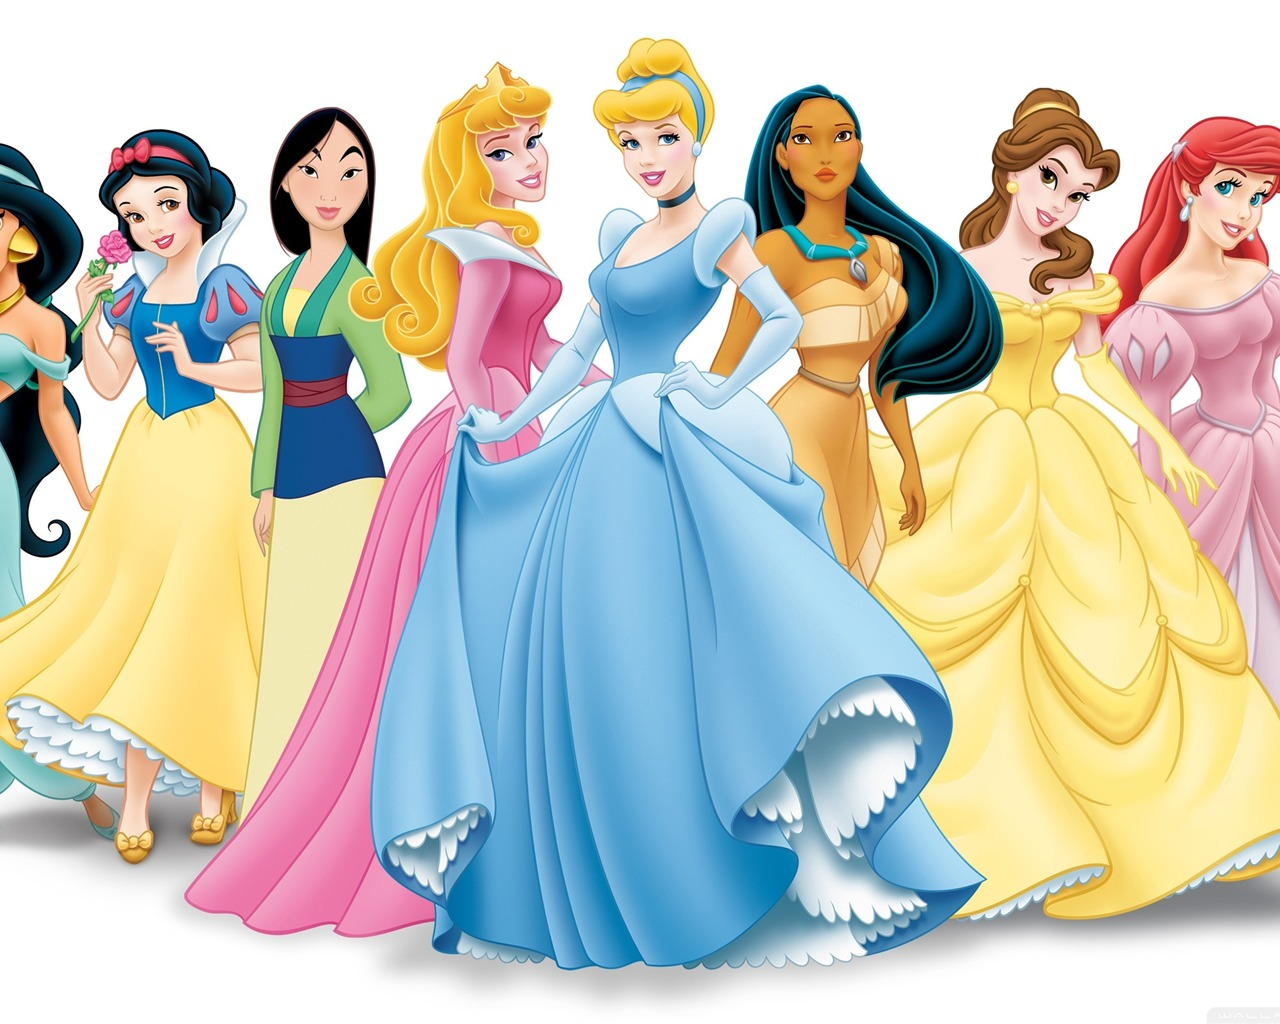 Disney Princess Personnages Disney Travaux Image De Bureau